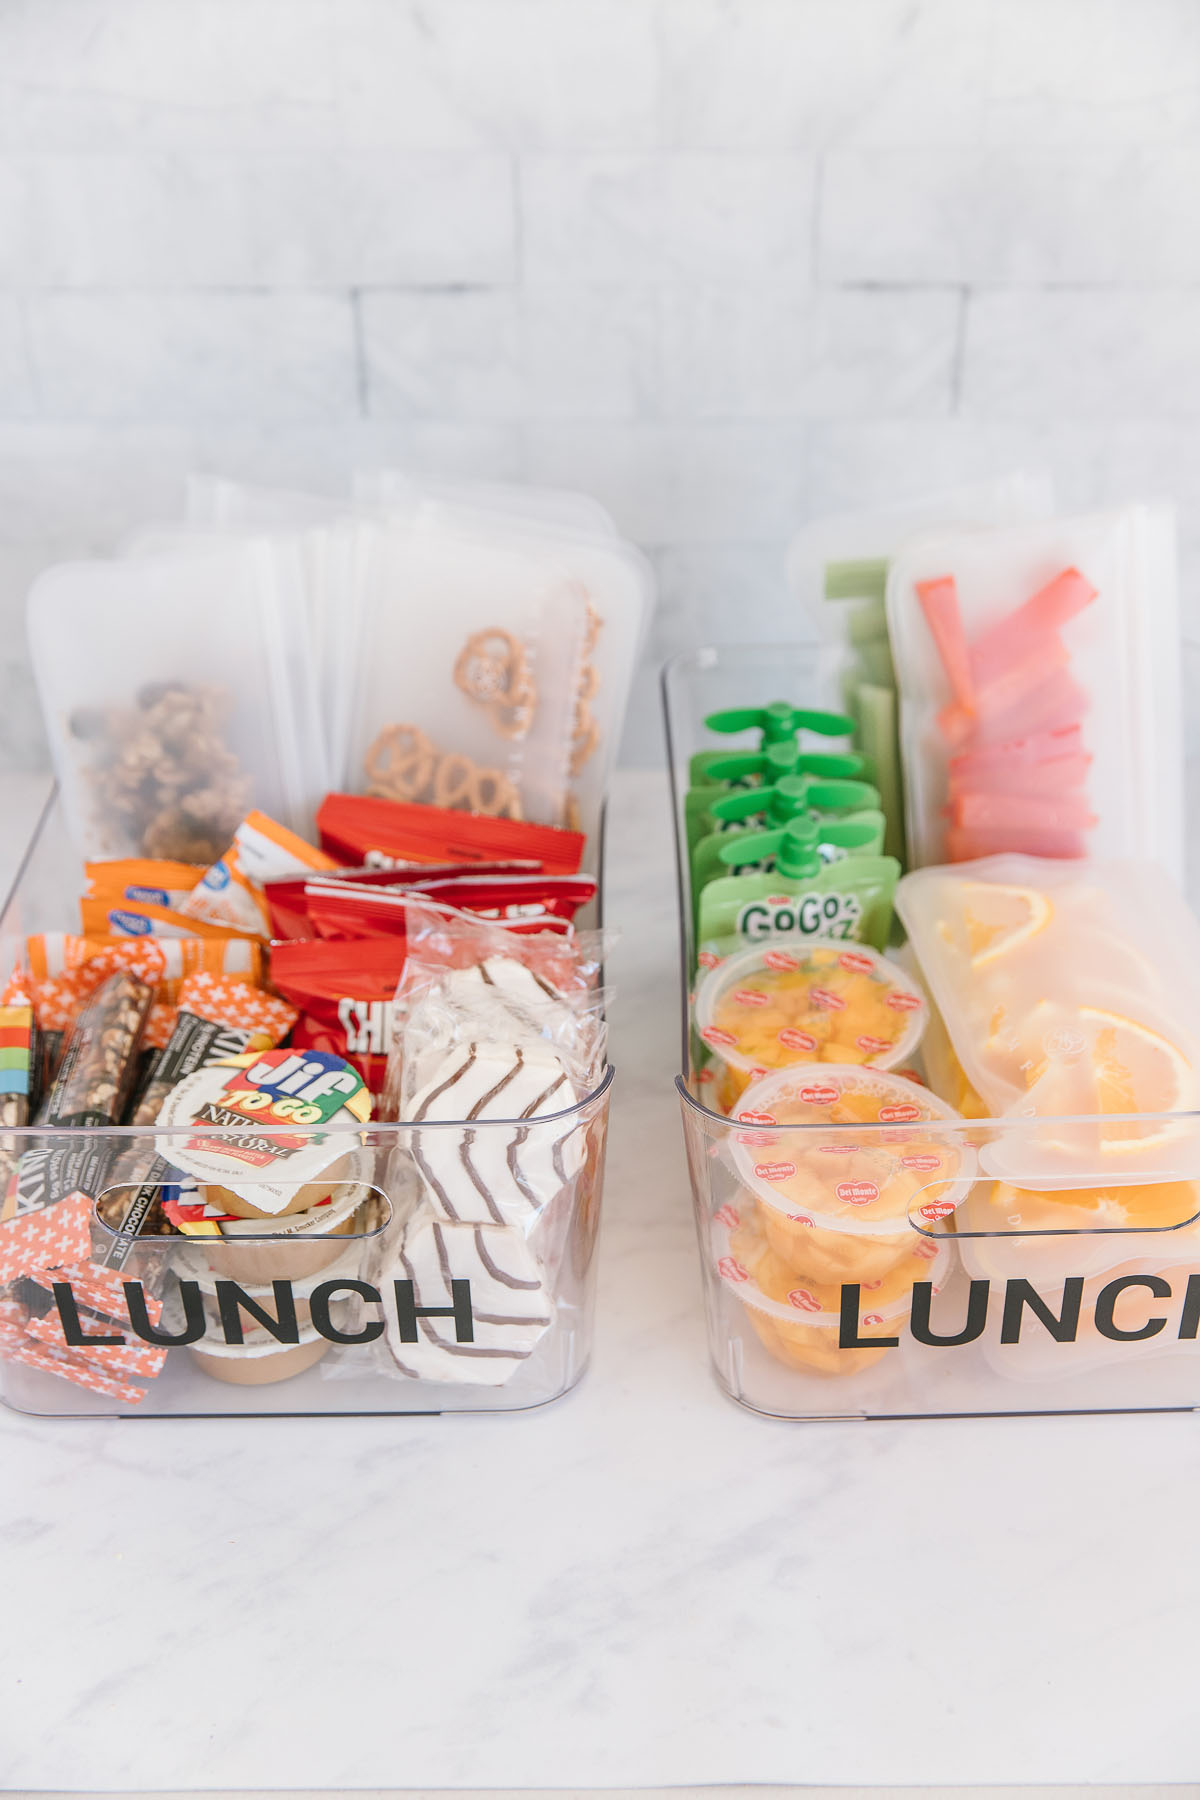 Two plastic containers with the word lunch on both of them. One is filled with prepackaged fruit and veggies and one is filled with packaged snacks, nuts, peanut butter, crackers and pretzels.